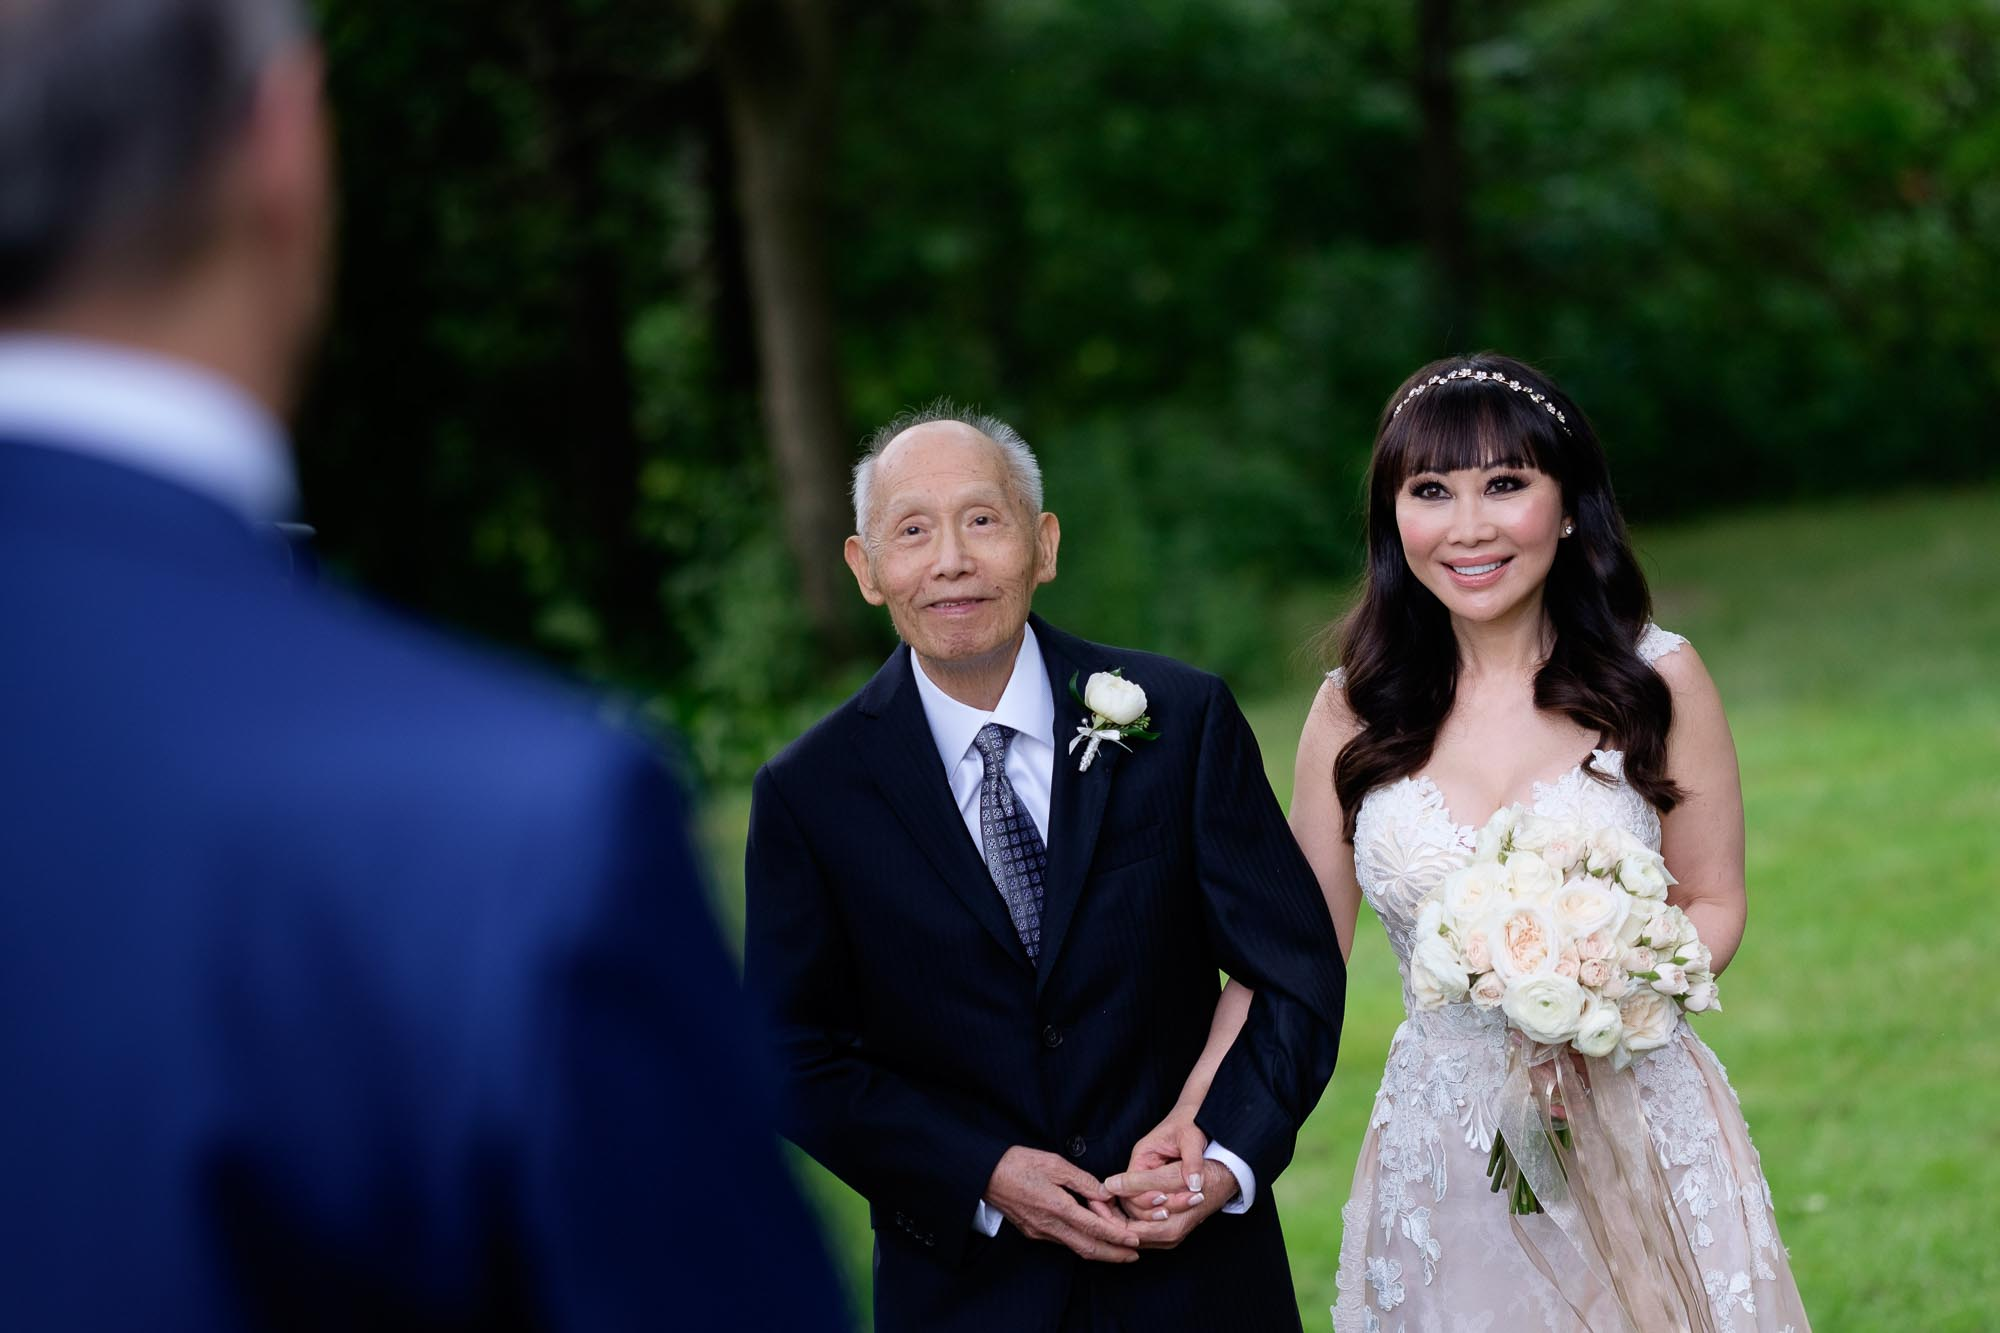 the bride is escorted down the aisle by her father during their outdoor wedding ceremony at Langdon Hall in Cambridge, Ontario.